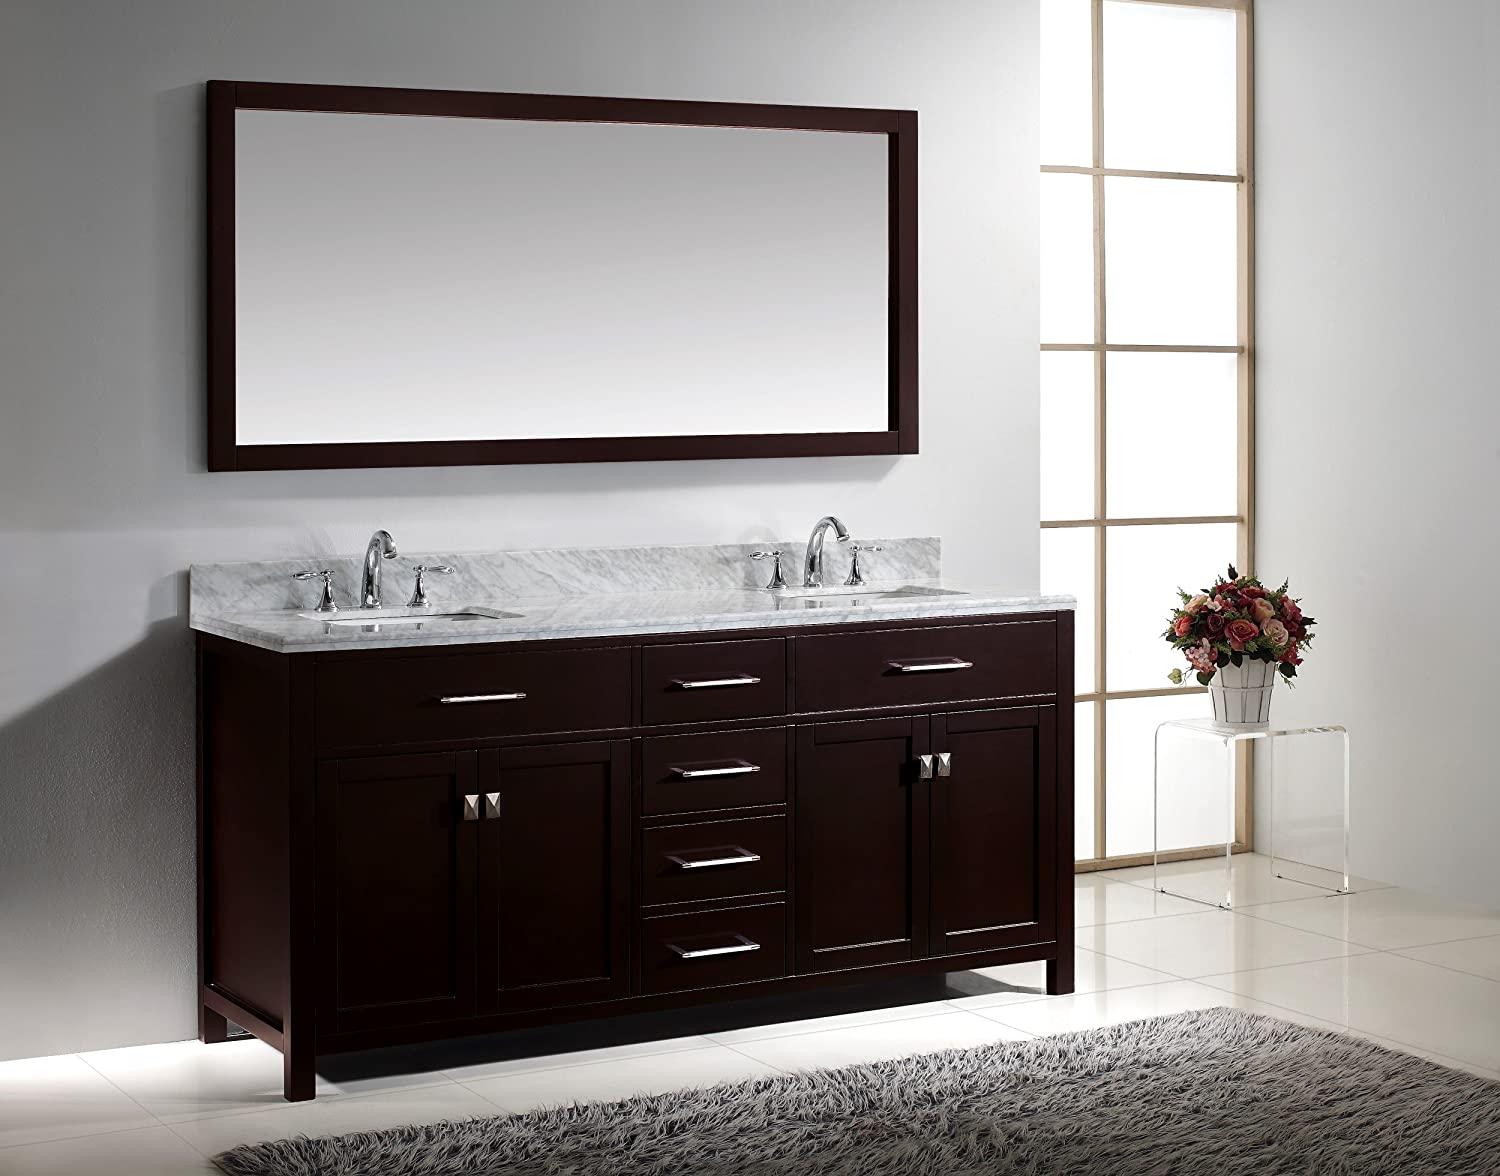 virtu usa caroline 72inch bathroom vanity with double square sinks in espresso and italian carrera white marble amazoncom